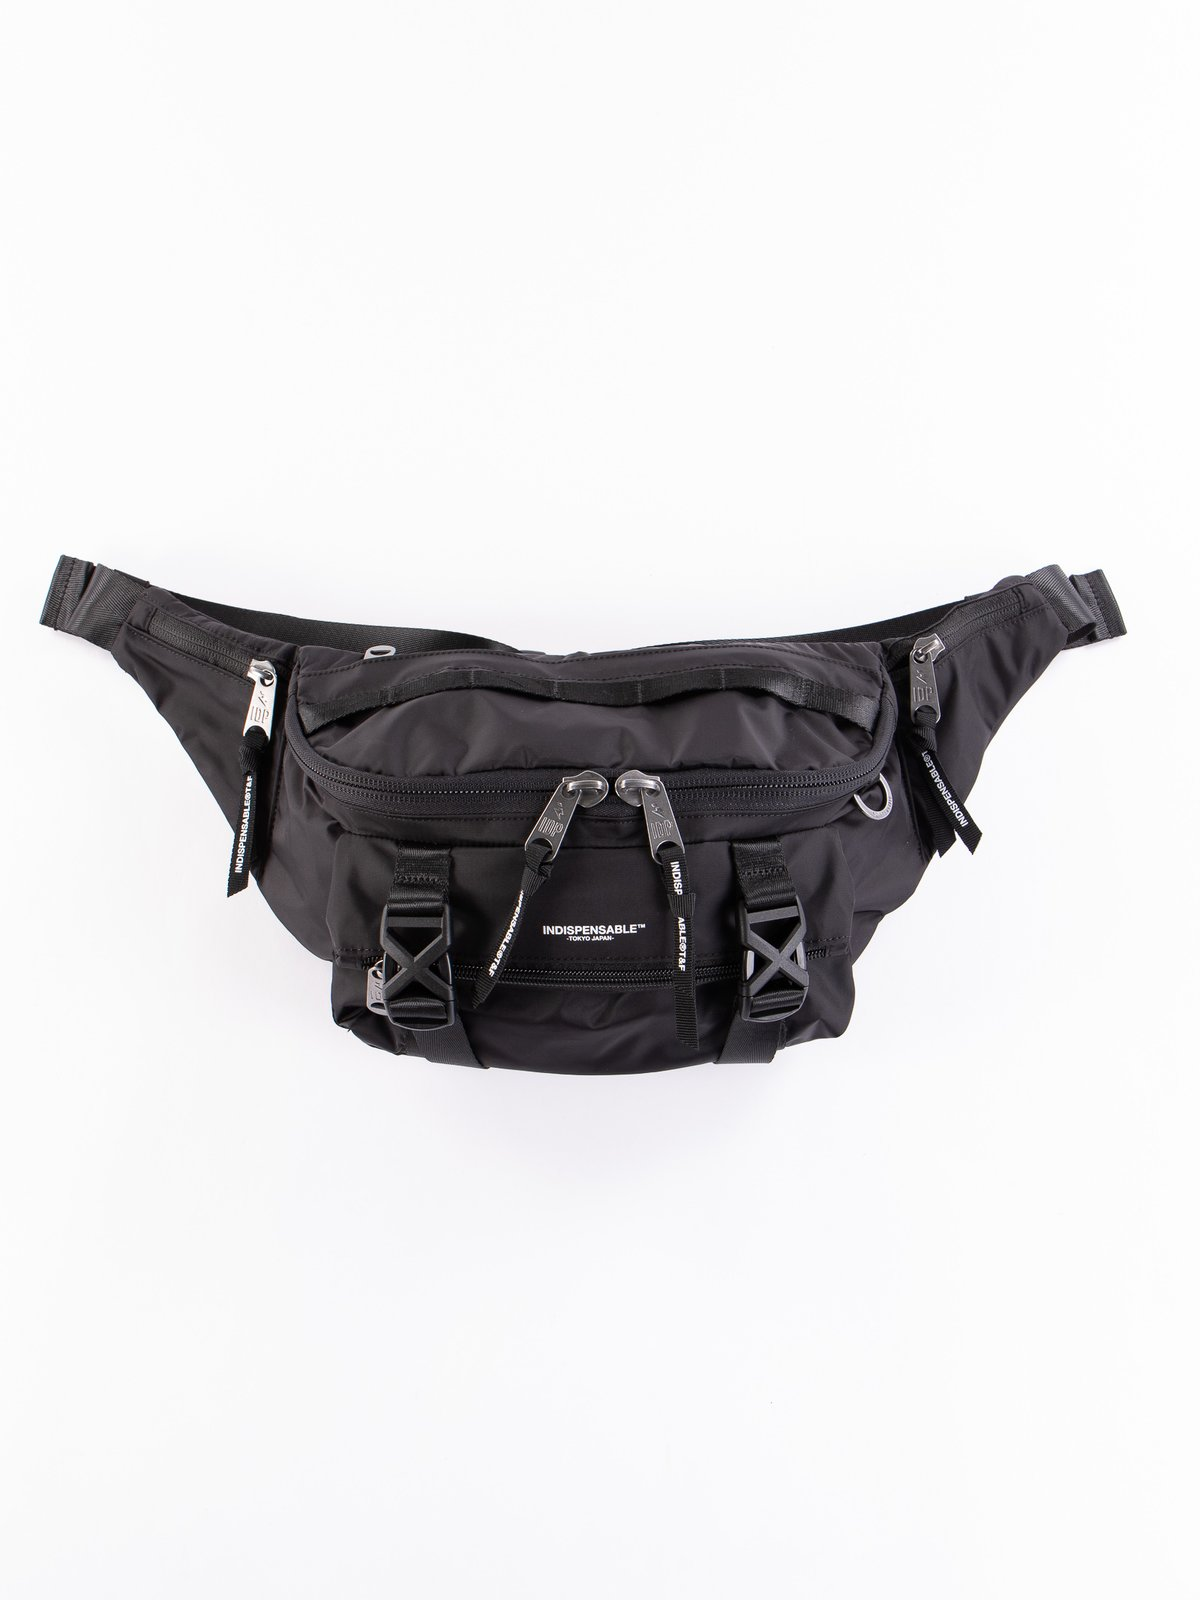 Black Econyl Attach IDP Belt Bag - Image 1